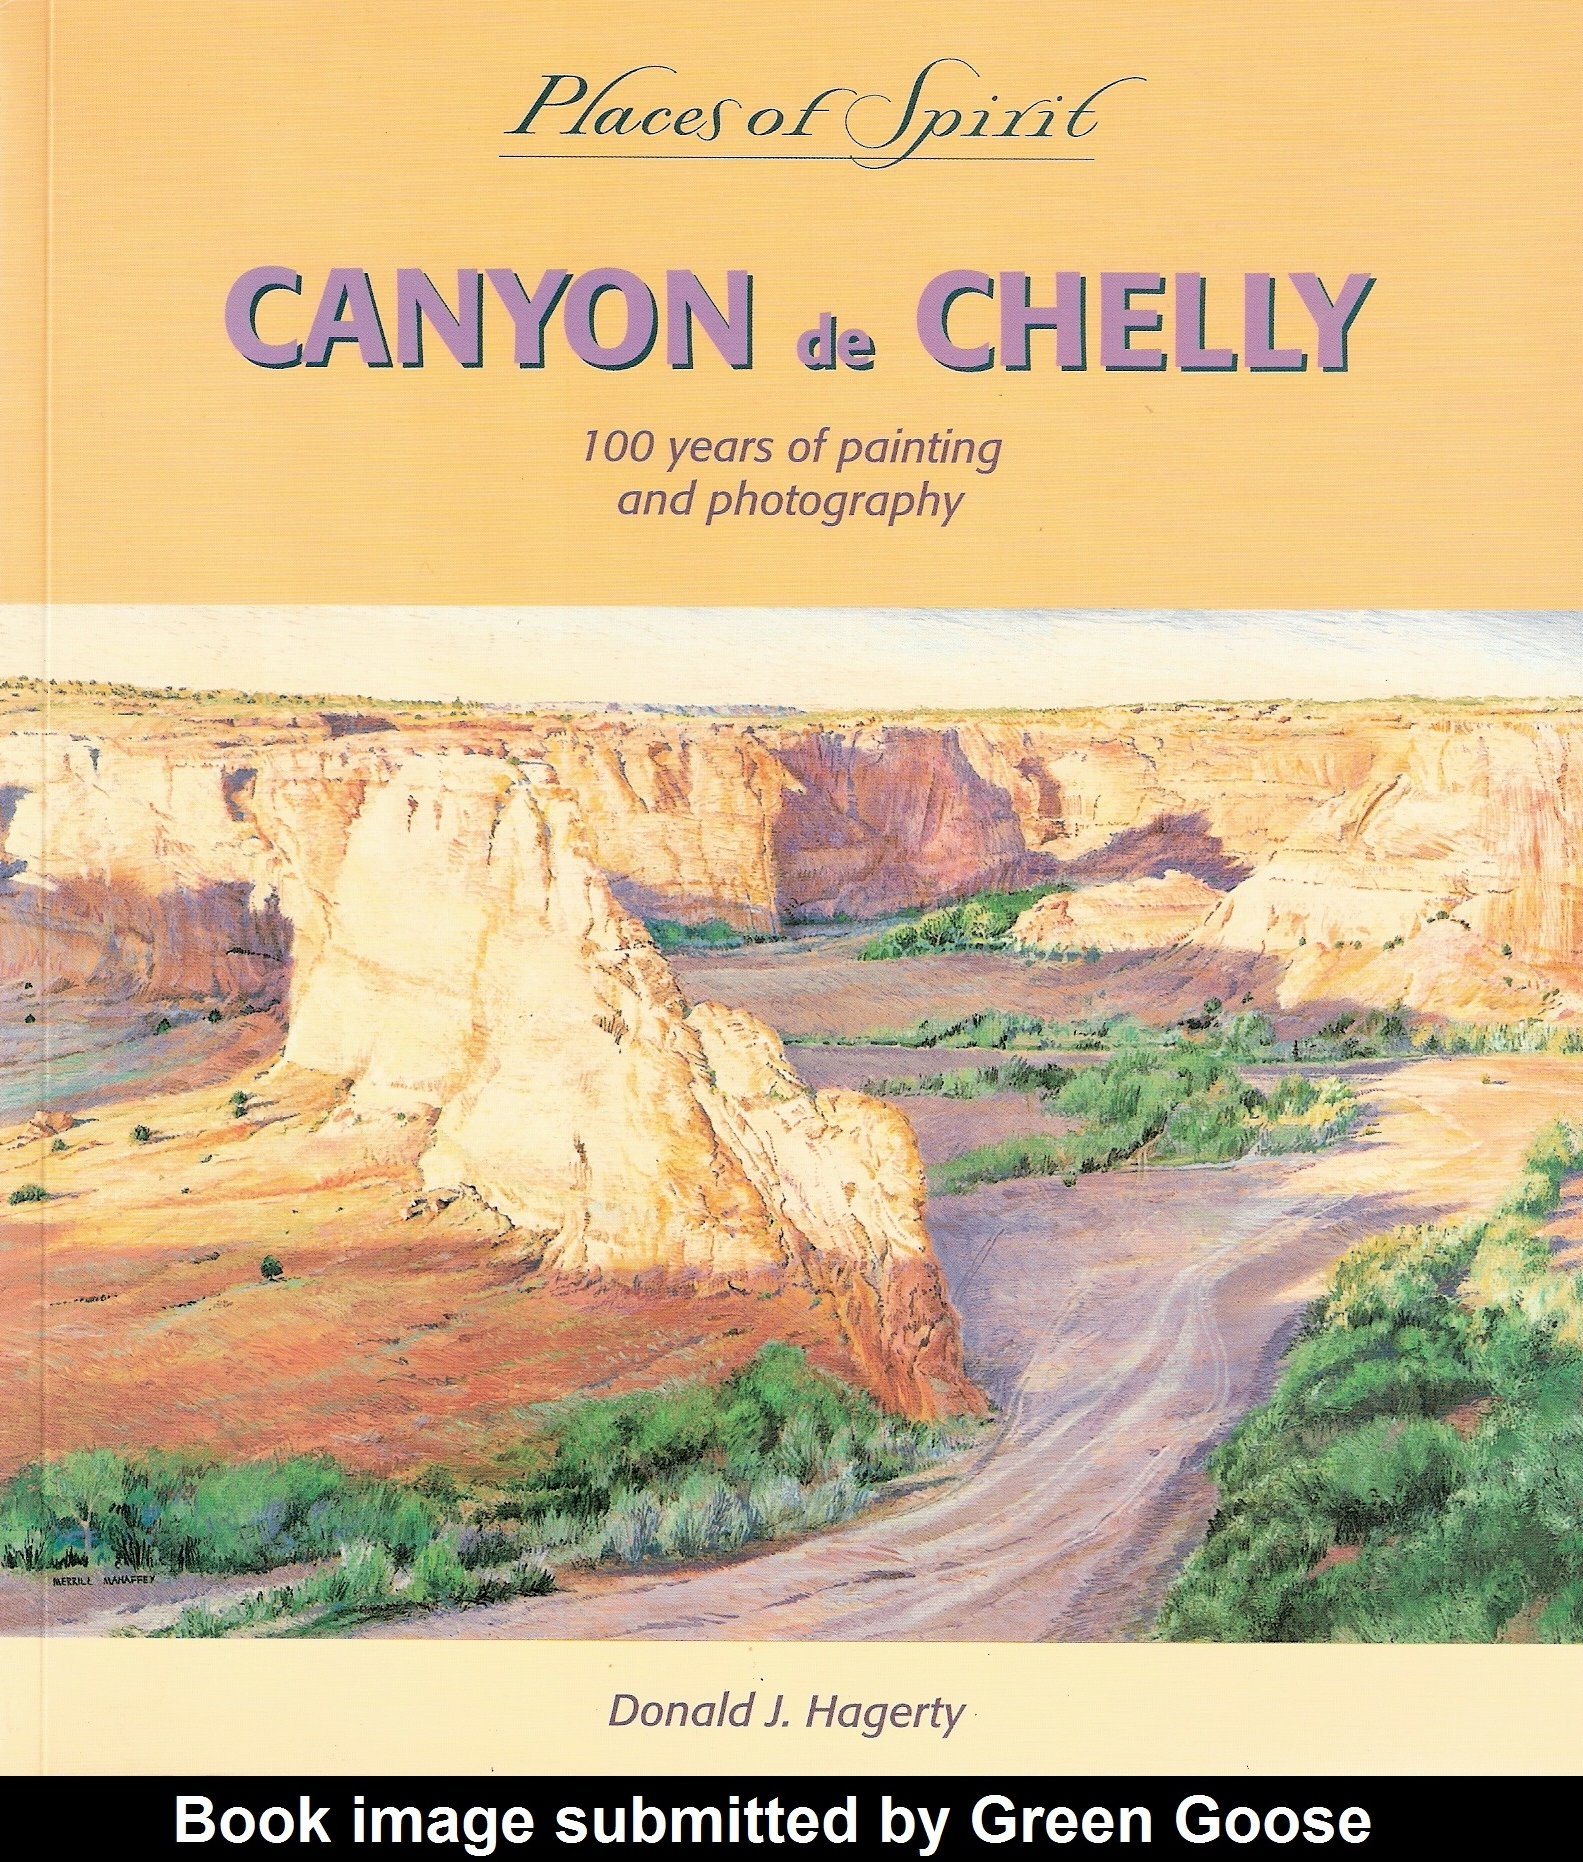 Canyon De Chelly: 100 Years of Painting and Photography (Places of Spirit Series)